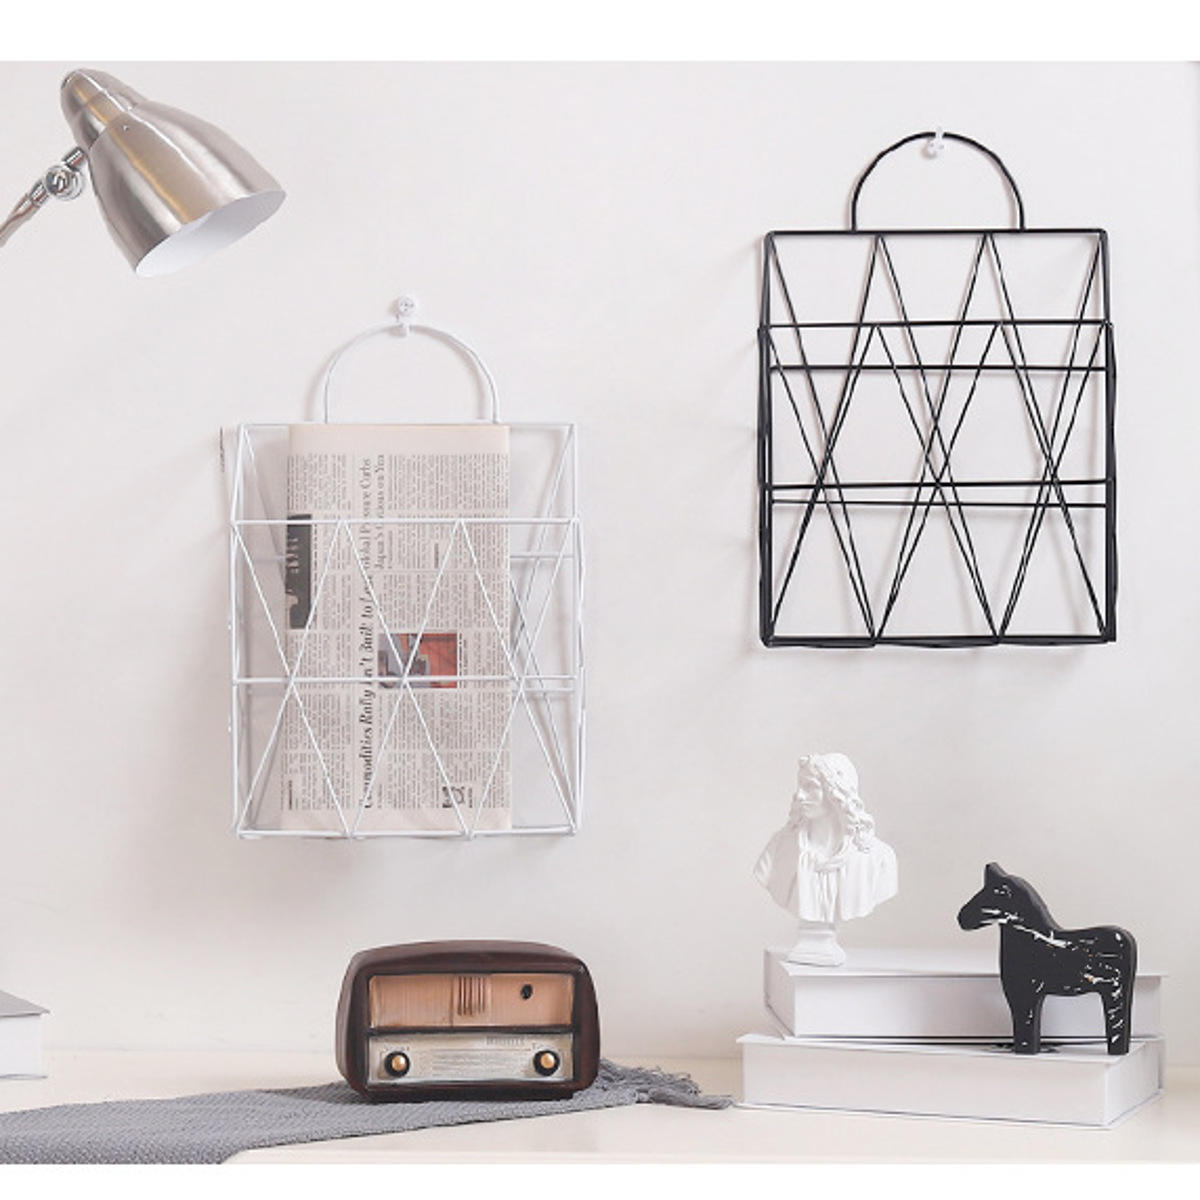 Kawat logam modern wall hanging shelf baskets rak penyimpanan buku koran display unit organizer